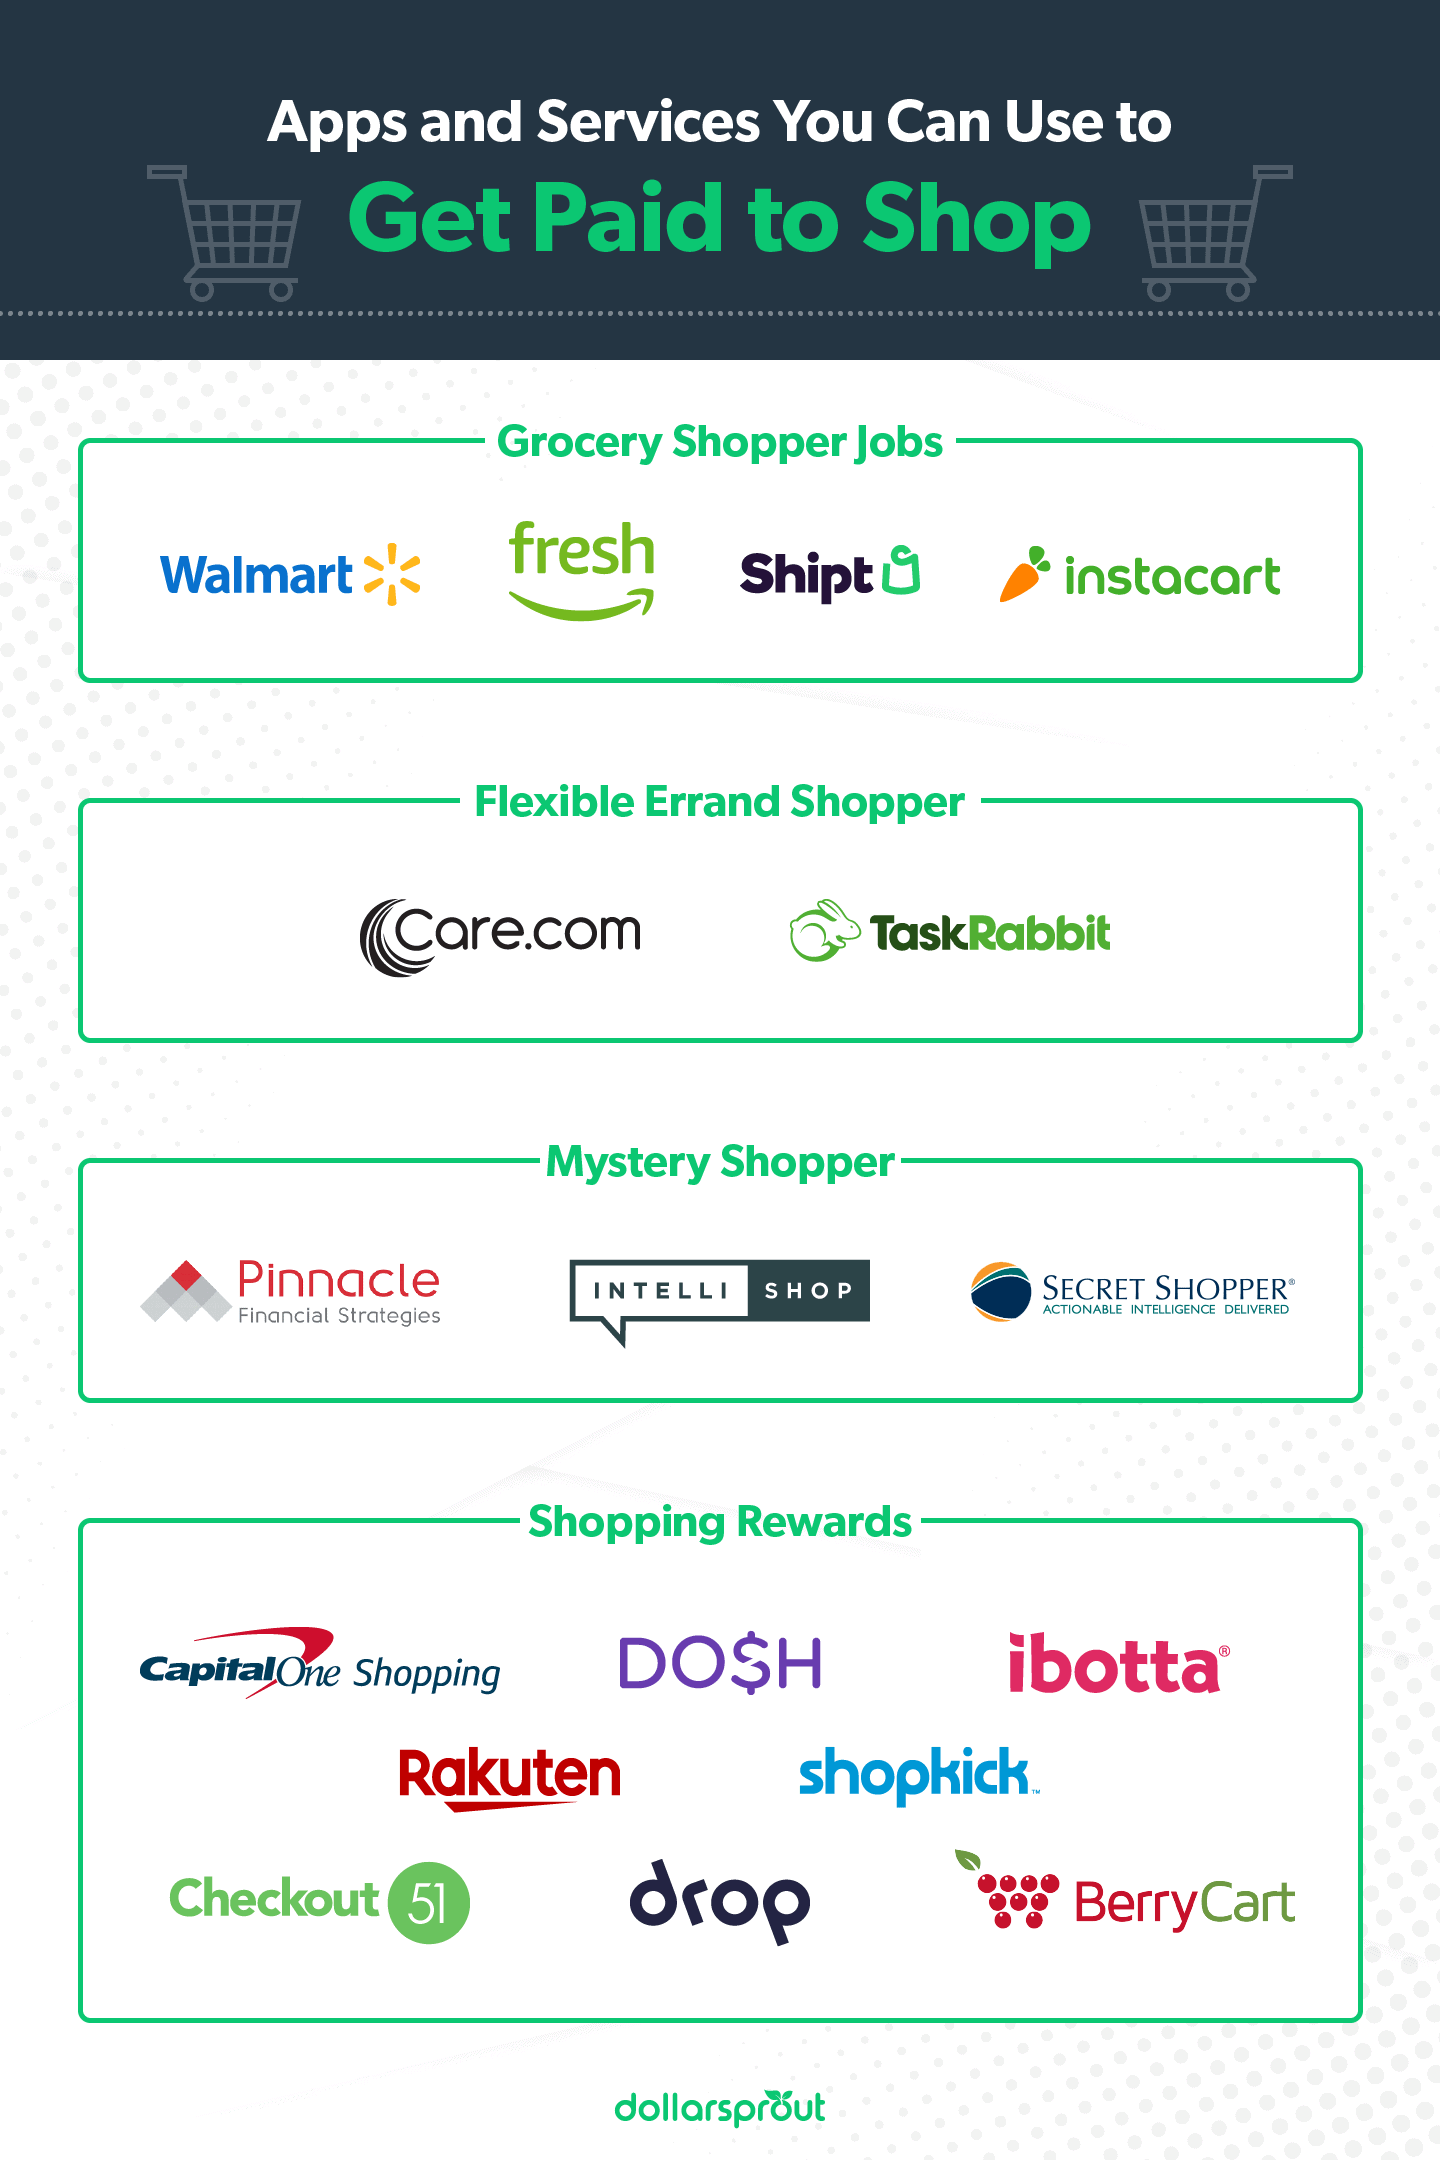 Apps and Services You Can Use to Get Paid to Shop